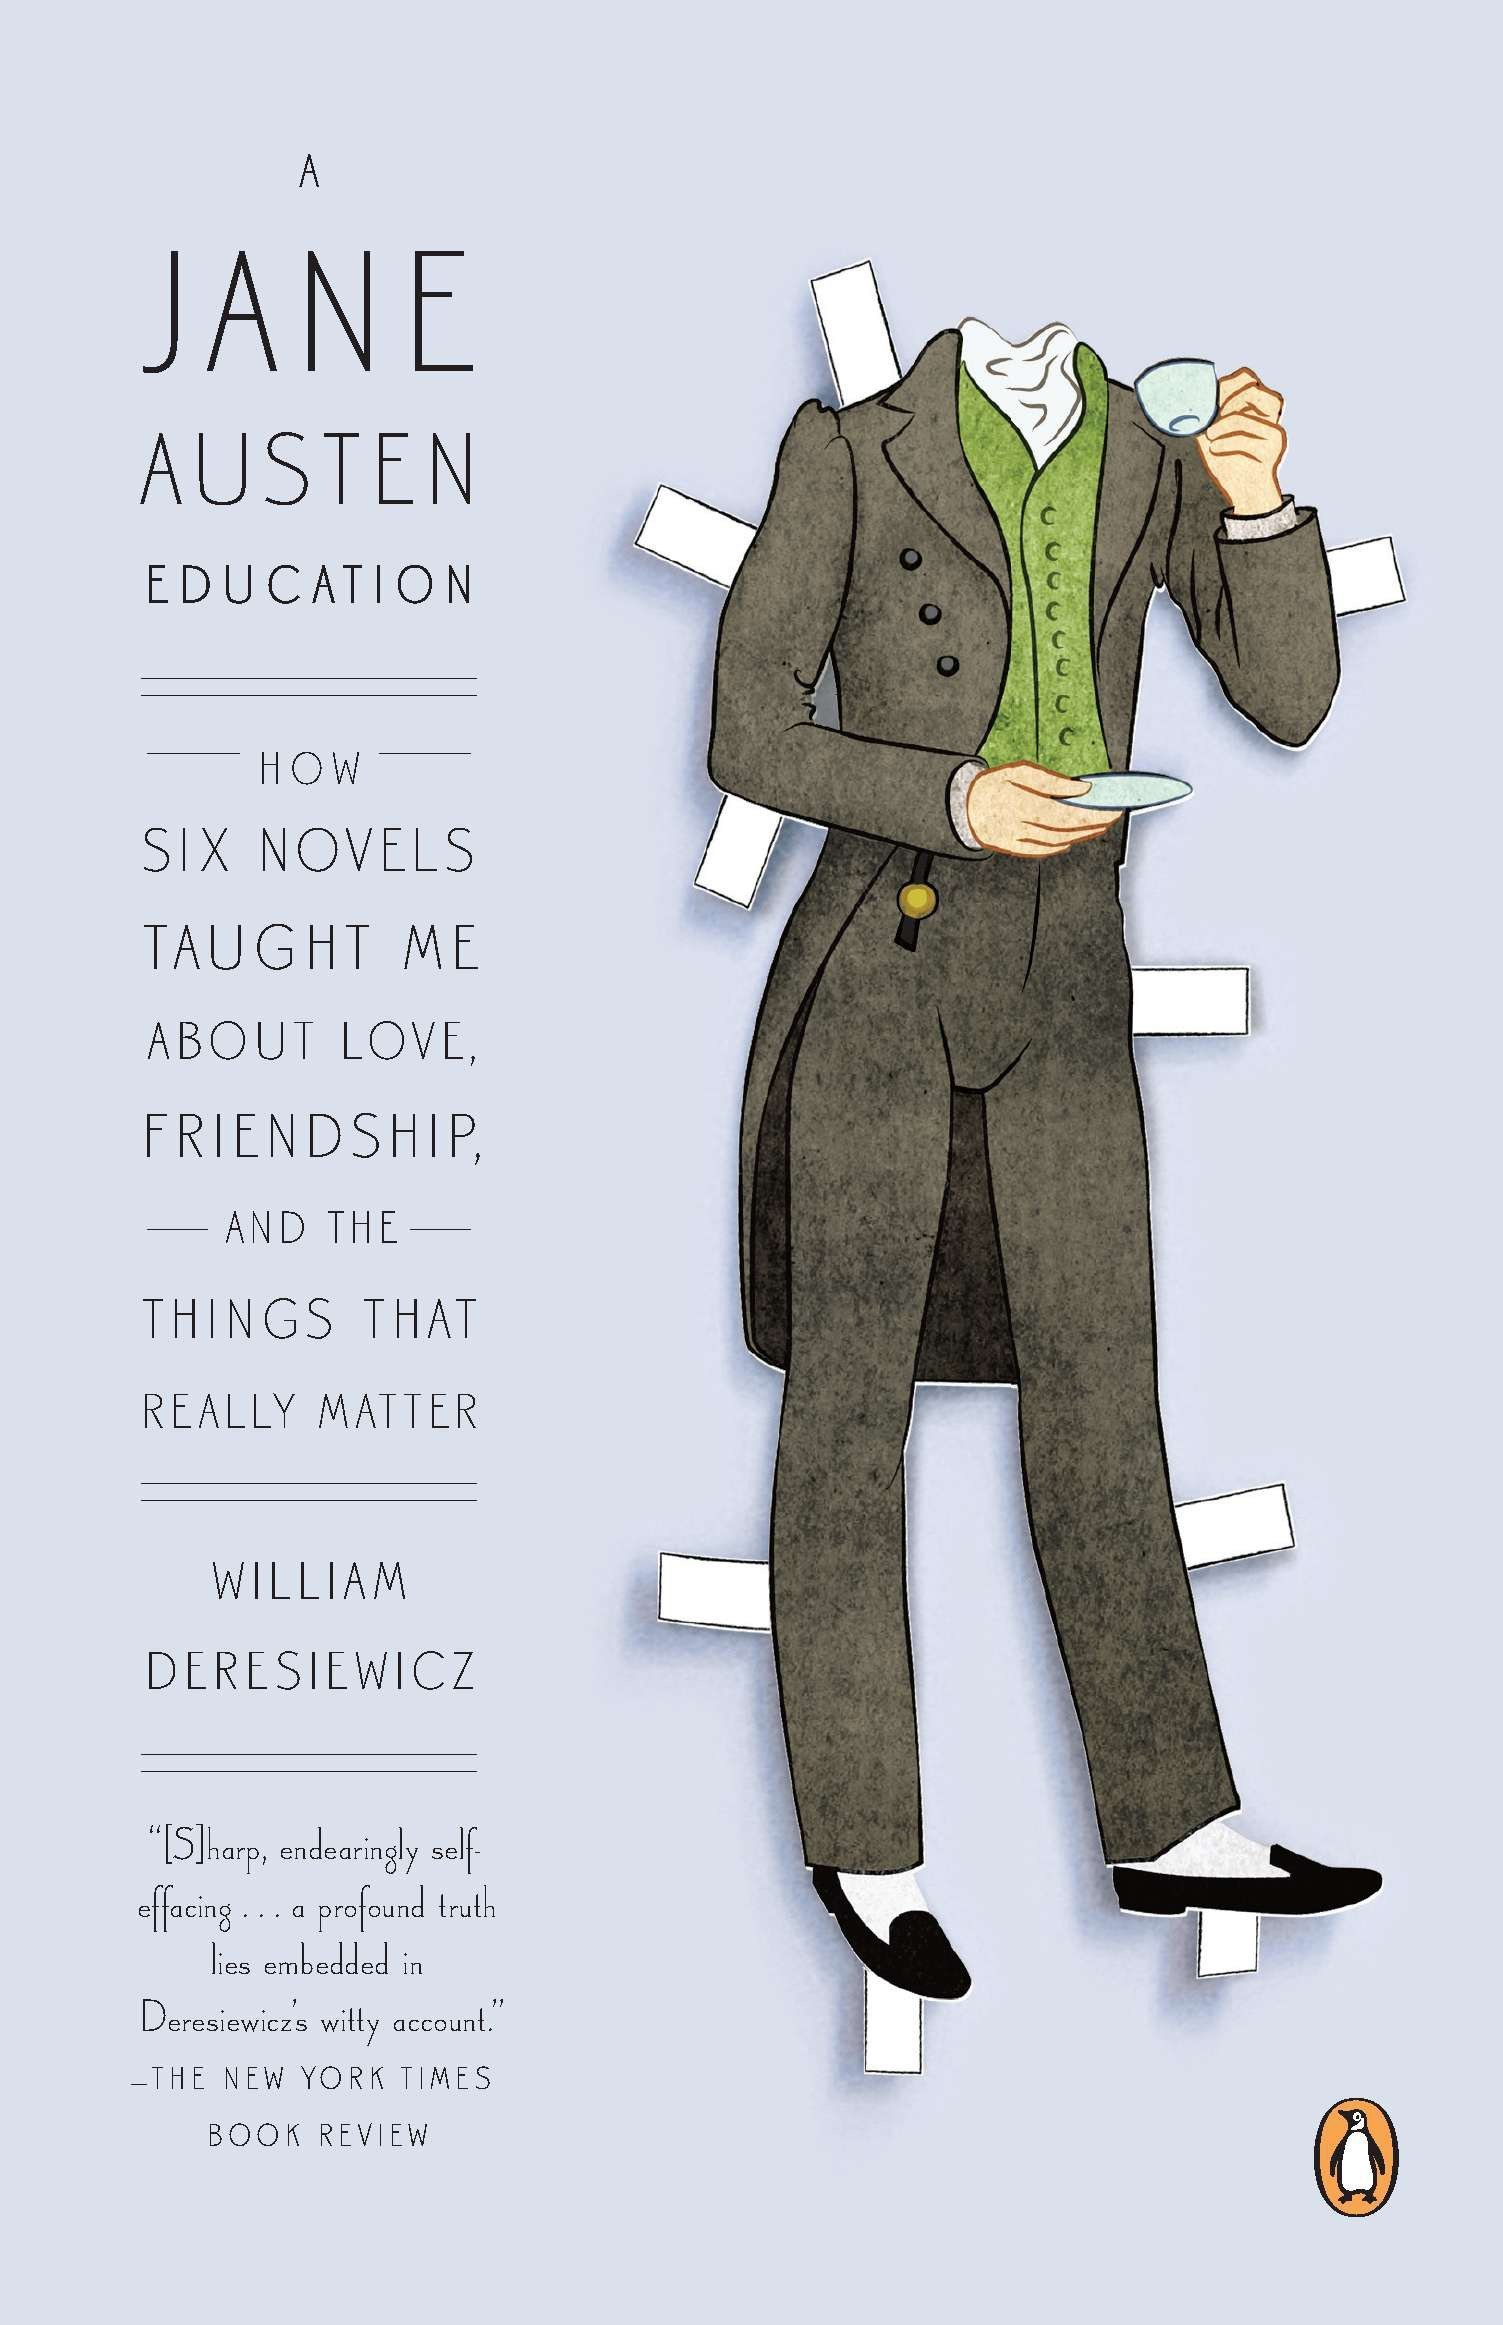 Download A Jane Austen Education: How Six Novels Taught Me About Love, Friendship, and the Things That Really Matter PDF ePub fb2 ebook